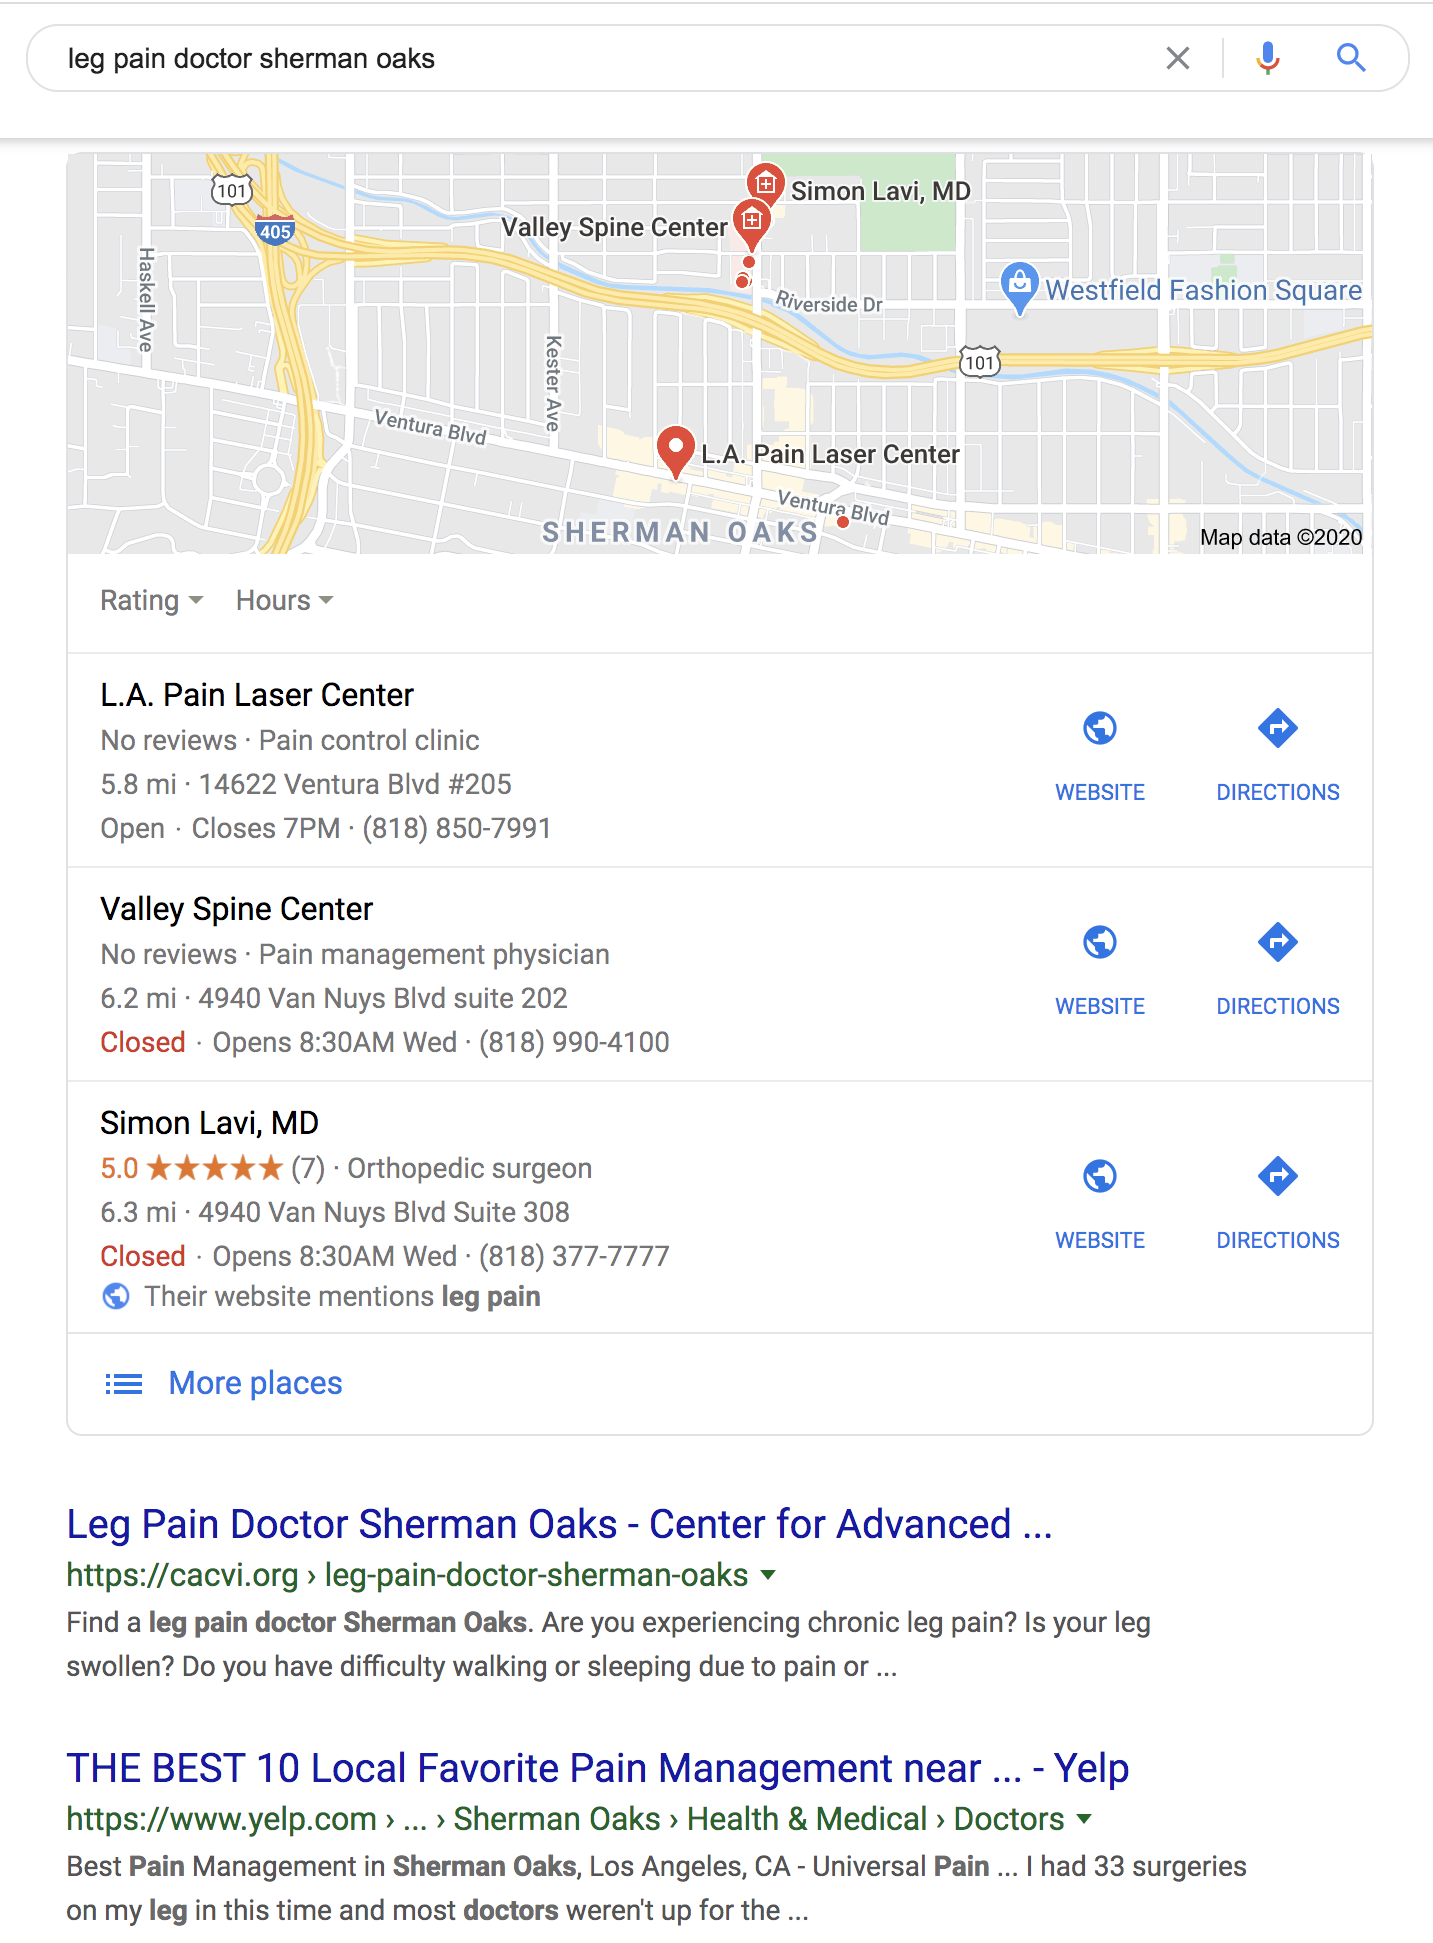 Leg pain doctor sherman oaks